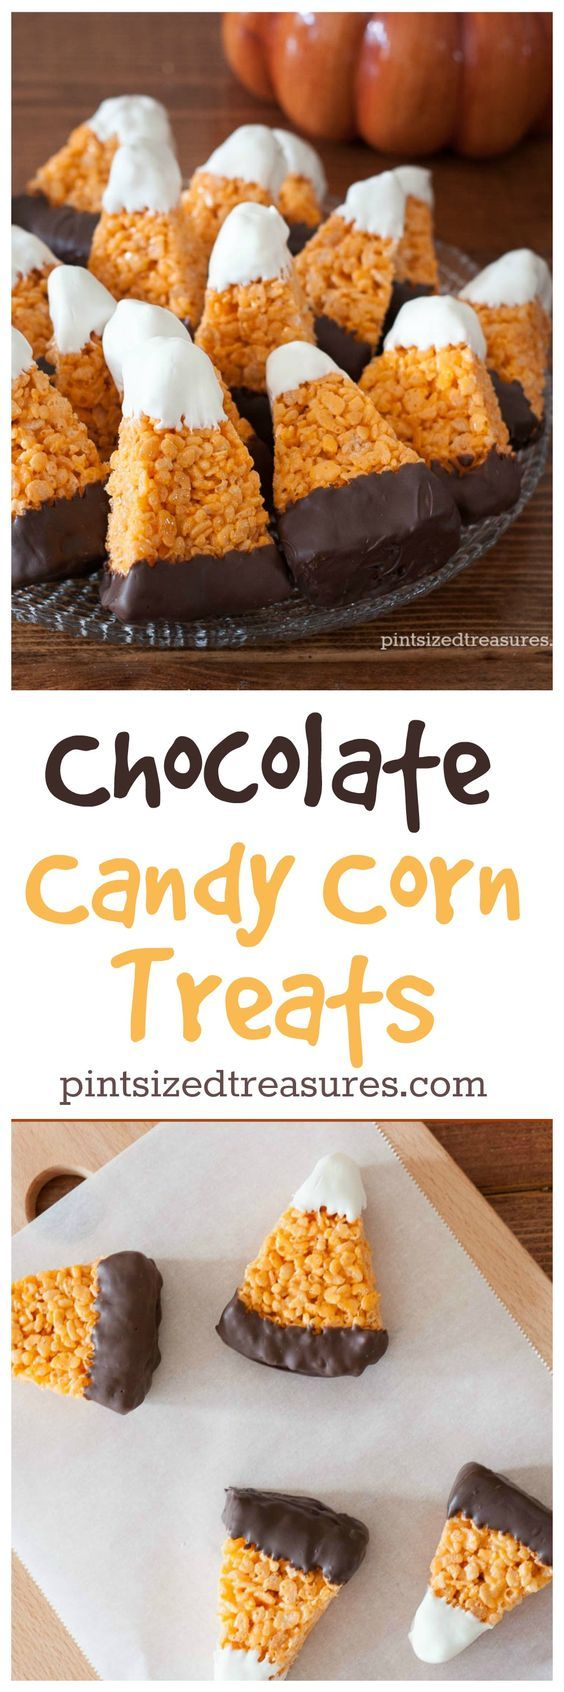 Chocolate Candy Corn Crispy Treats are super-cute and easy to make! Not to…